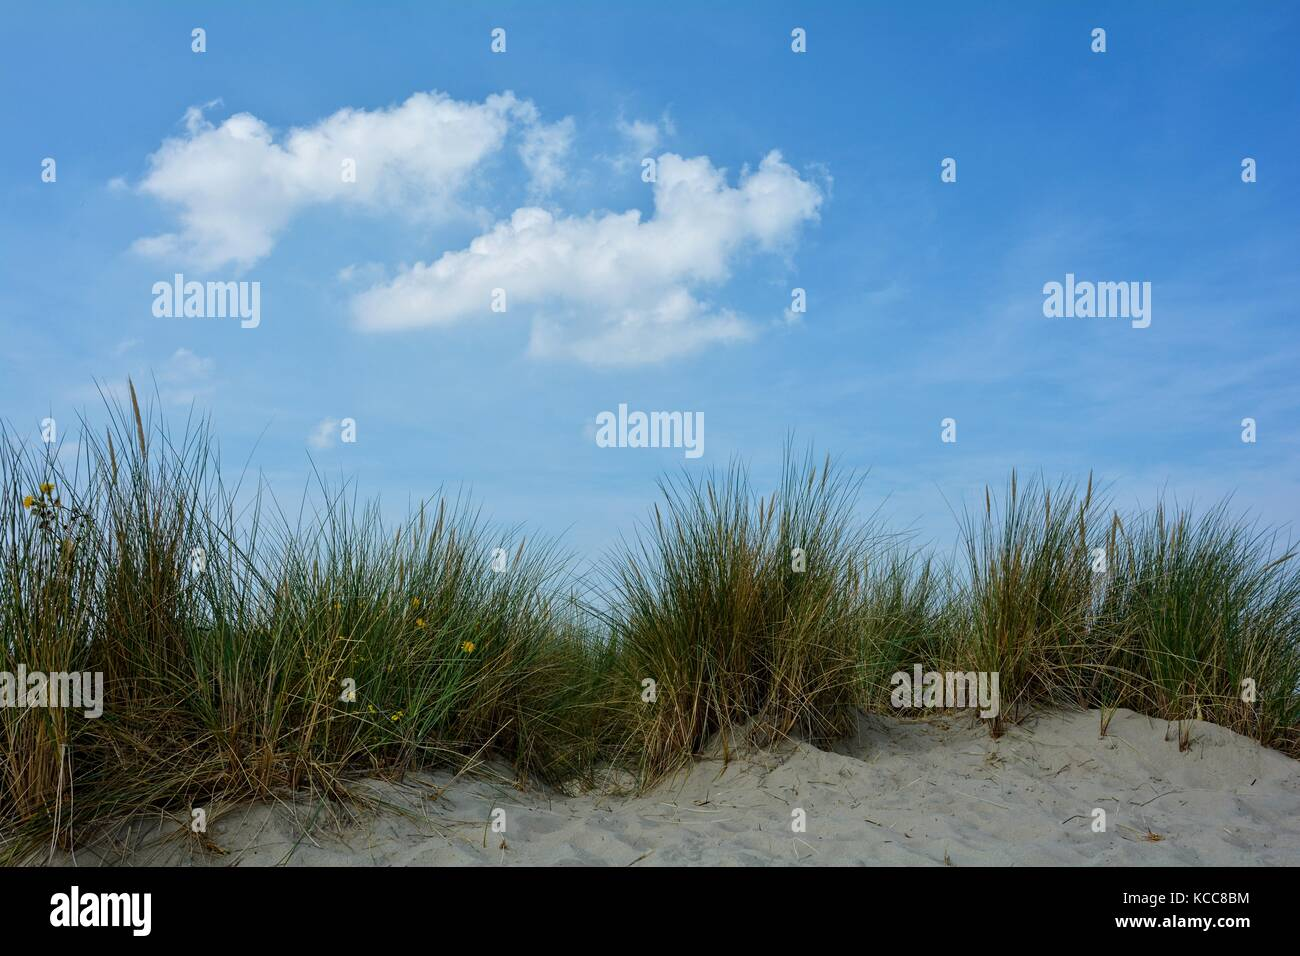 Beach oat in the sandy dunes on the North Sea coast  with many blue sky - Stock Image